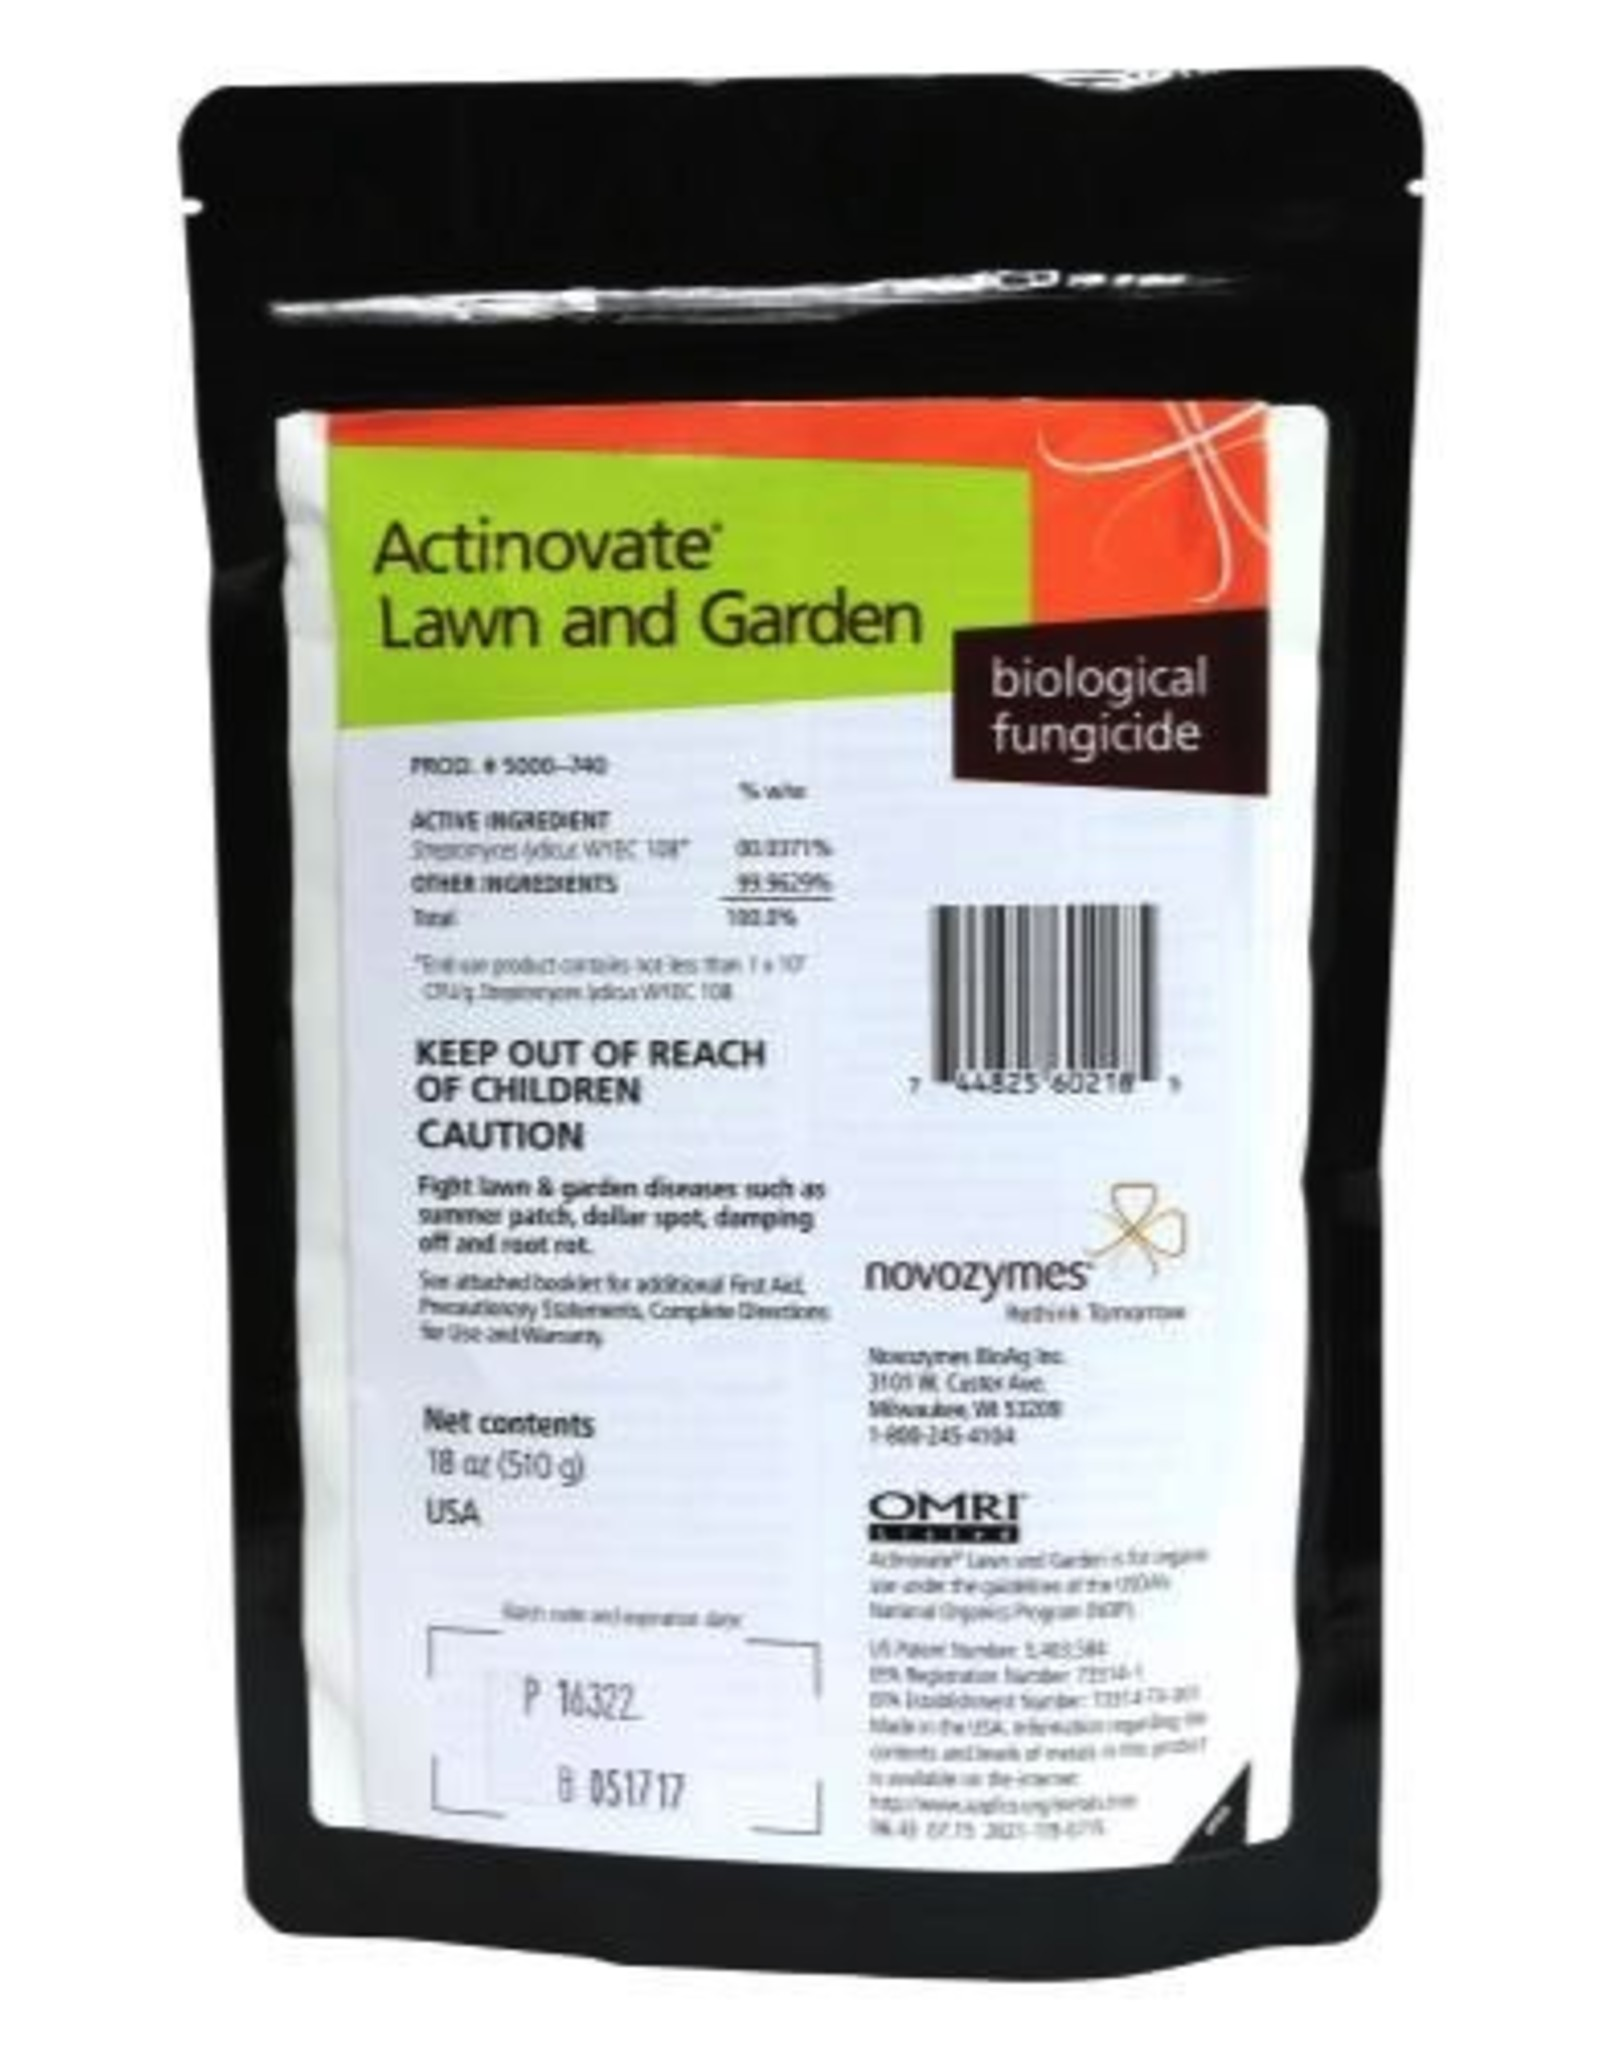 ACTINOVATE Actinovate® L & G contains a high concentration of a patented beneficial microorganism. When applied, the Actinovate® L & G microbe grows on the plant's roots and leaves, living off the plant's by-products while at the same time attacking harmful disease